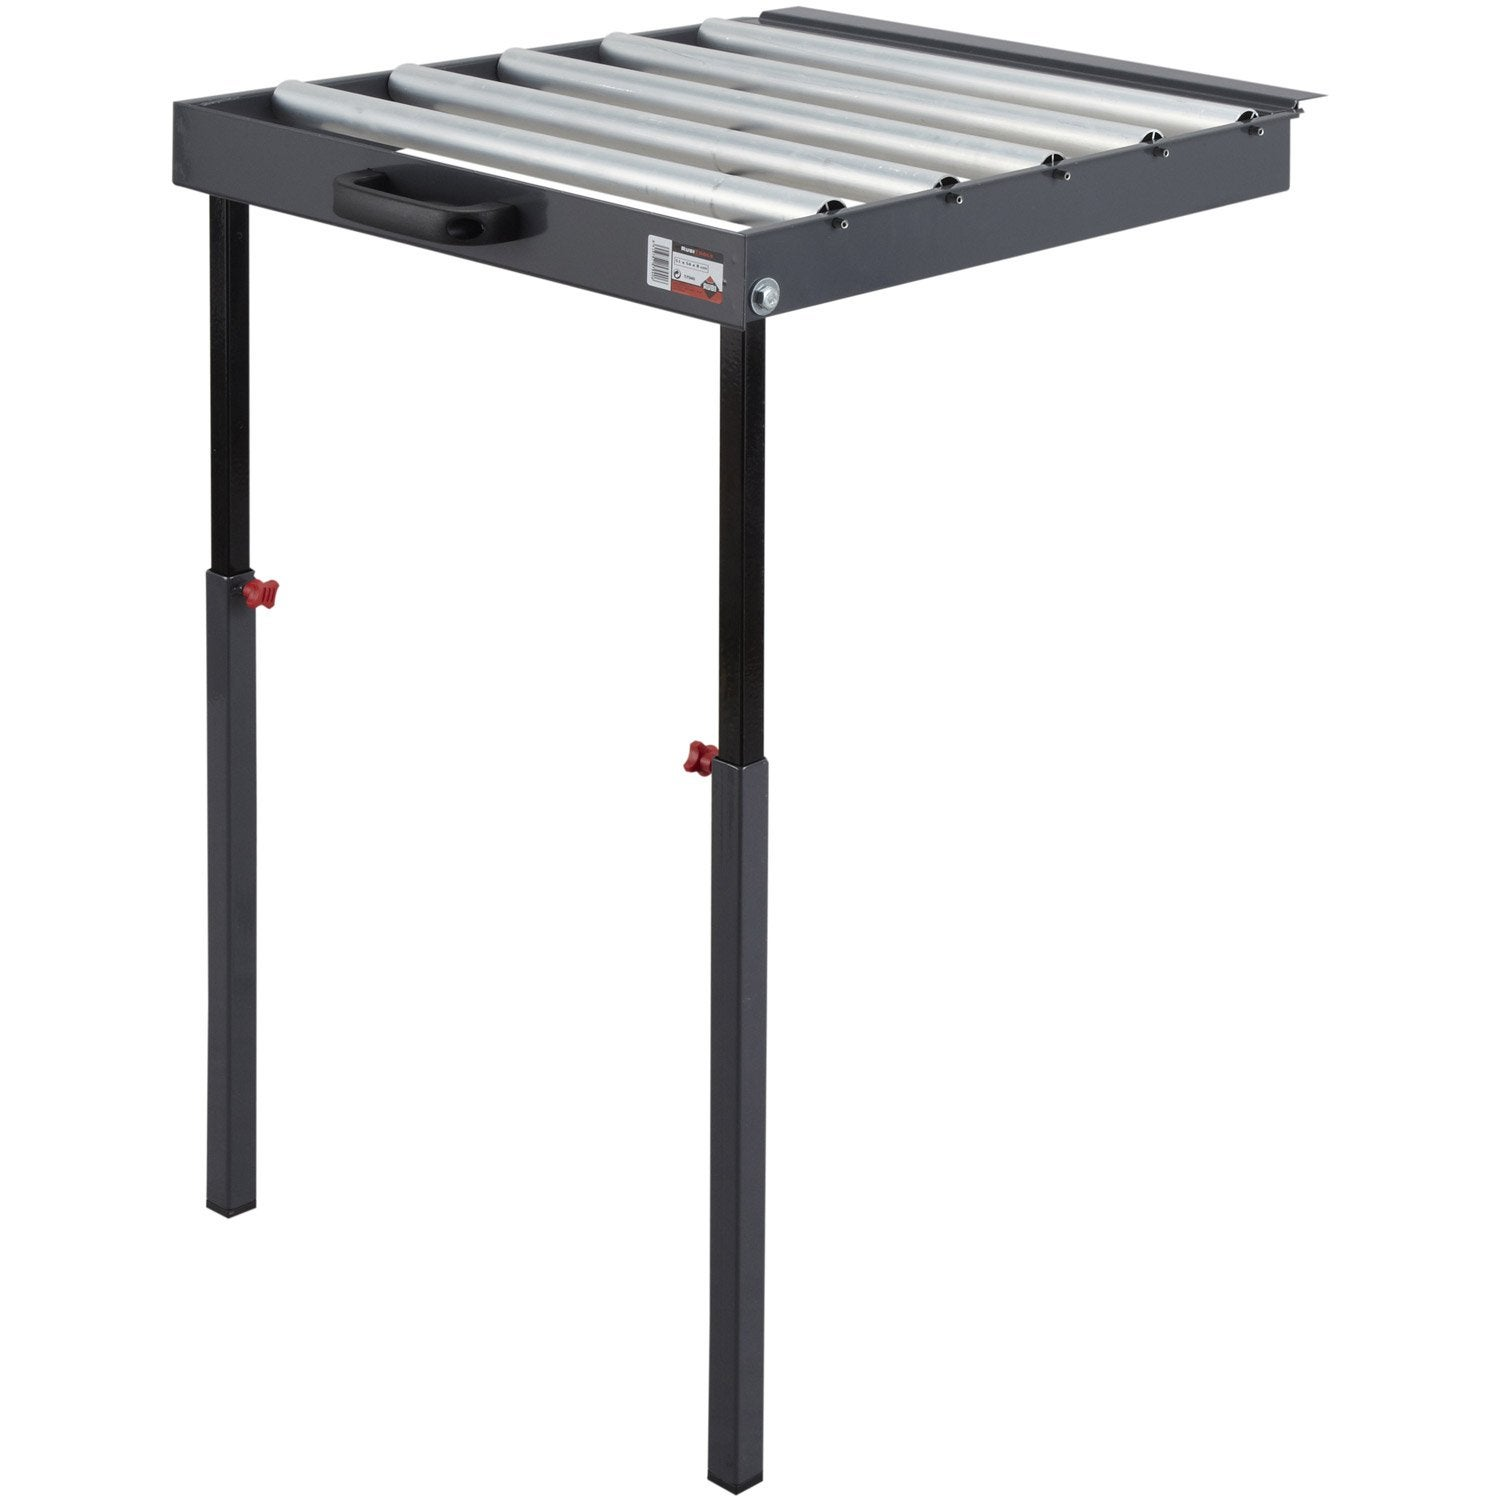 Table rouleaux rubi leroy merlin - Table rabattable leroy merlin ...